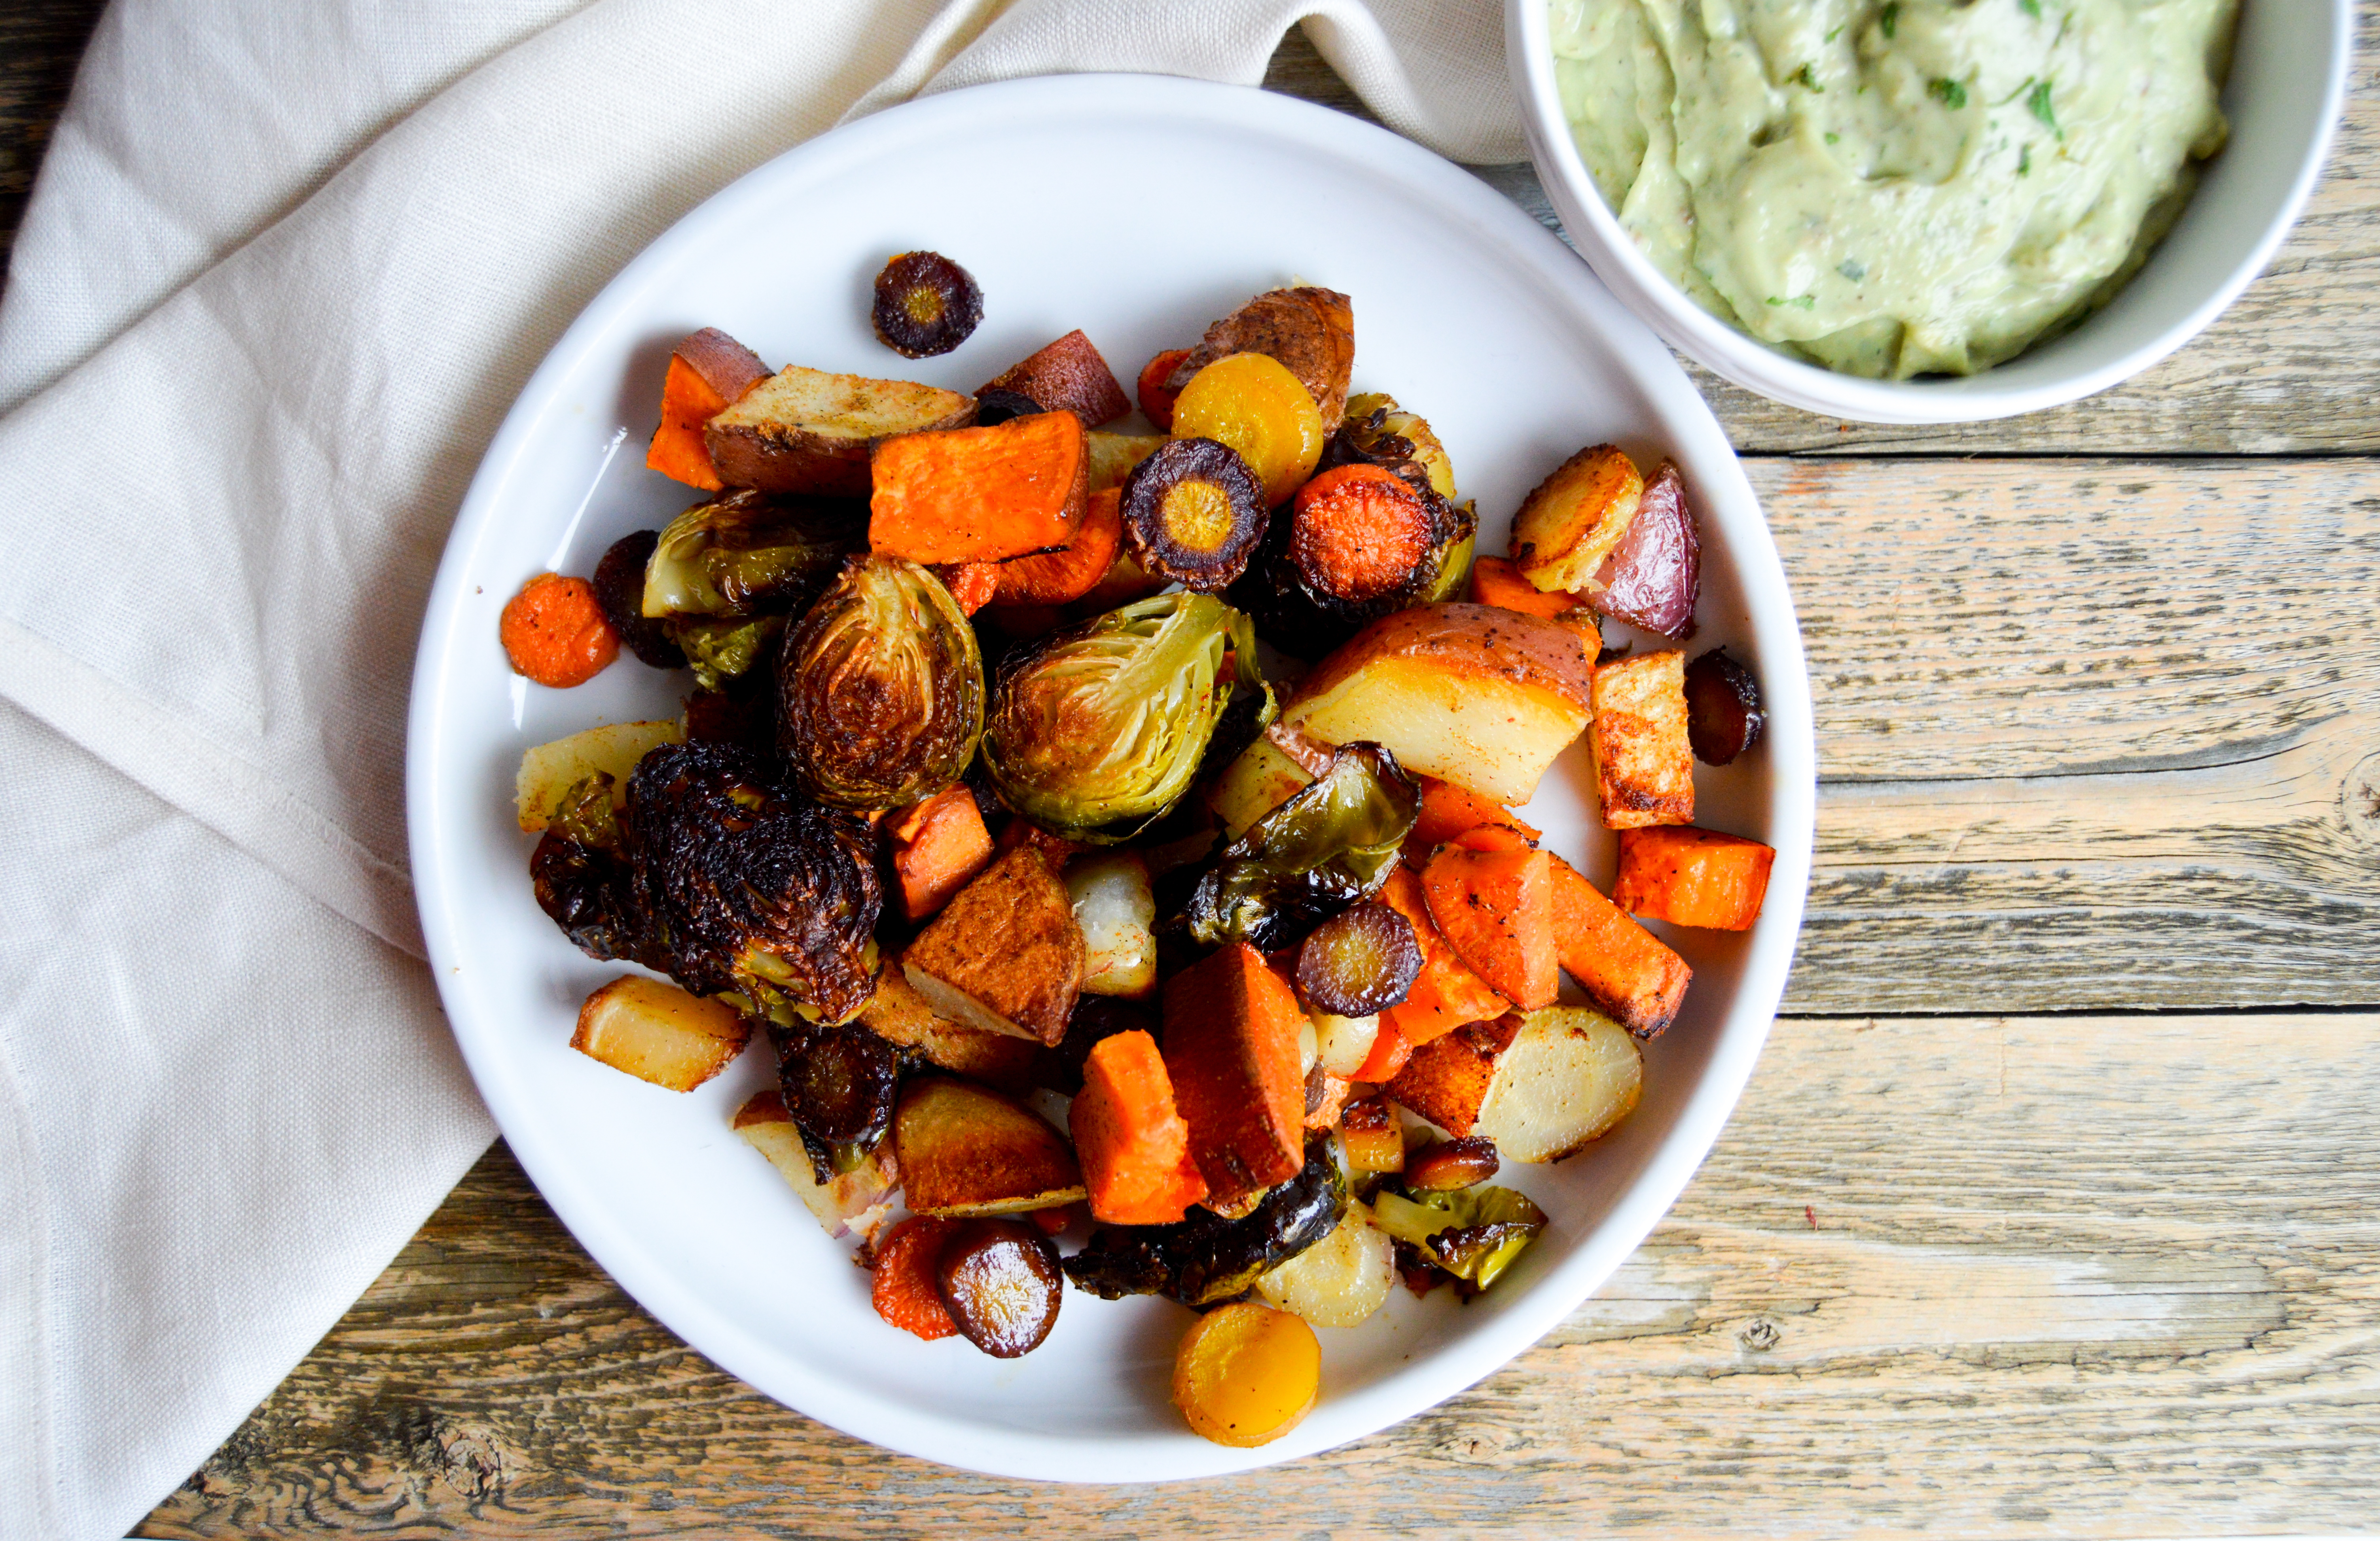 Recipe for baking hearty sheet pan veggies and avocado ranch dip recipe. Vegetable filled dinner idea for a healthy meal. Corn oil and avocado substitutions. Rainbow carrots, brussels sprouts, sweet potato, and red potato veggies baked with corn oil and seasonings. Delicious, easy, healthy dinner dish.